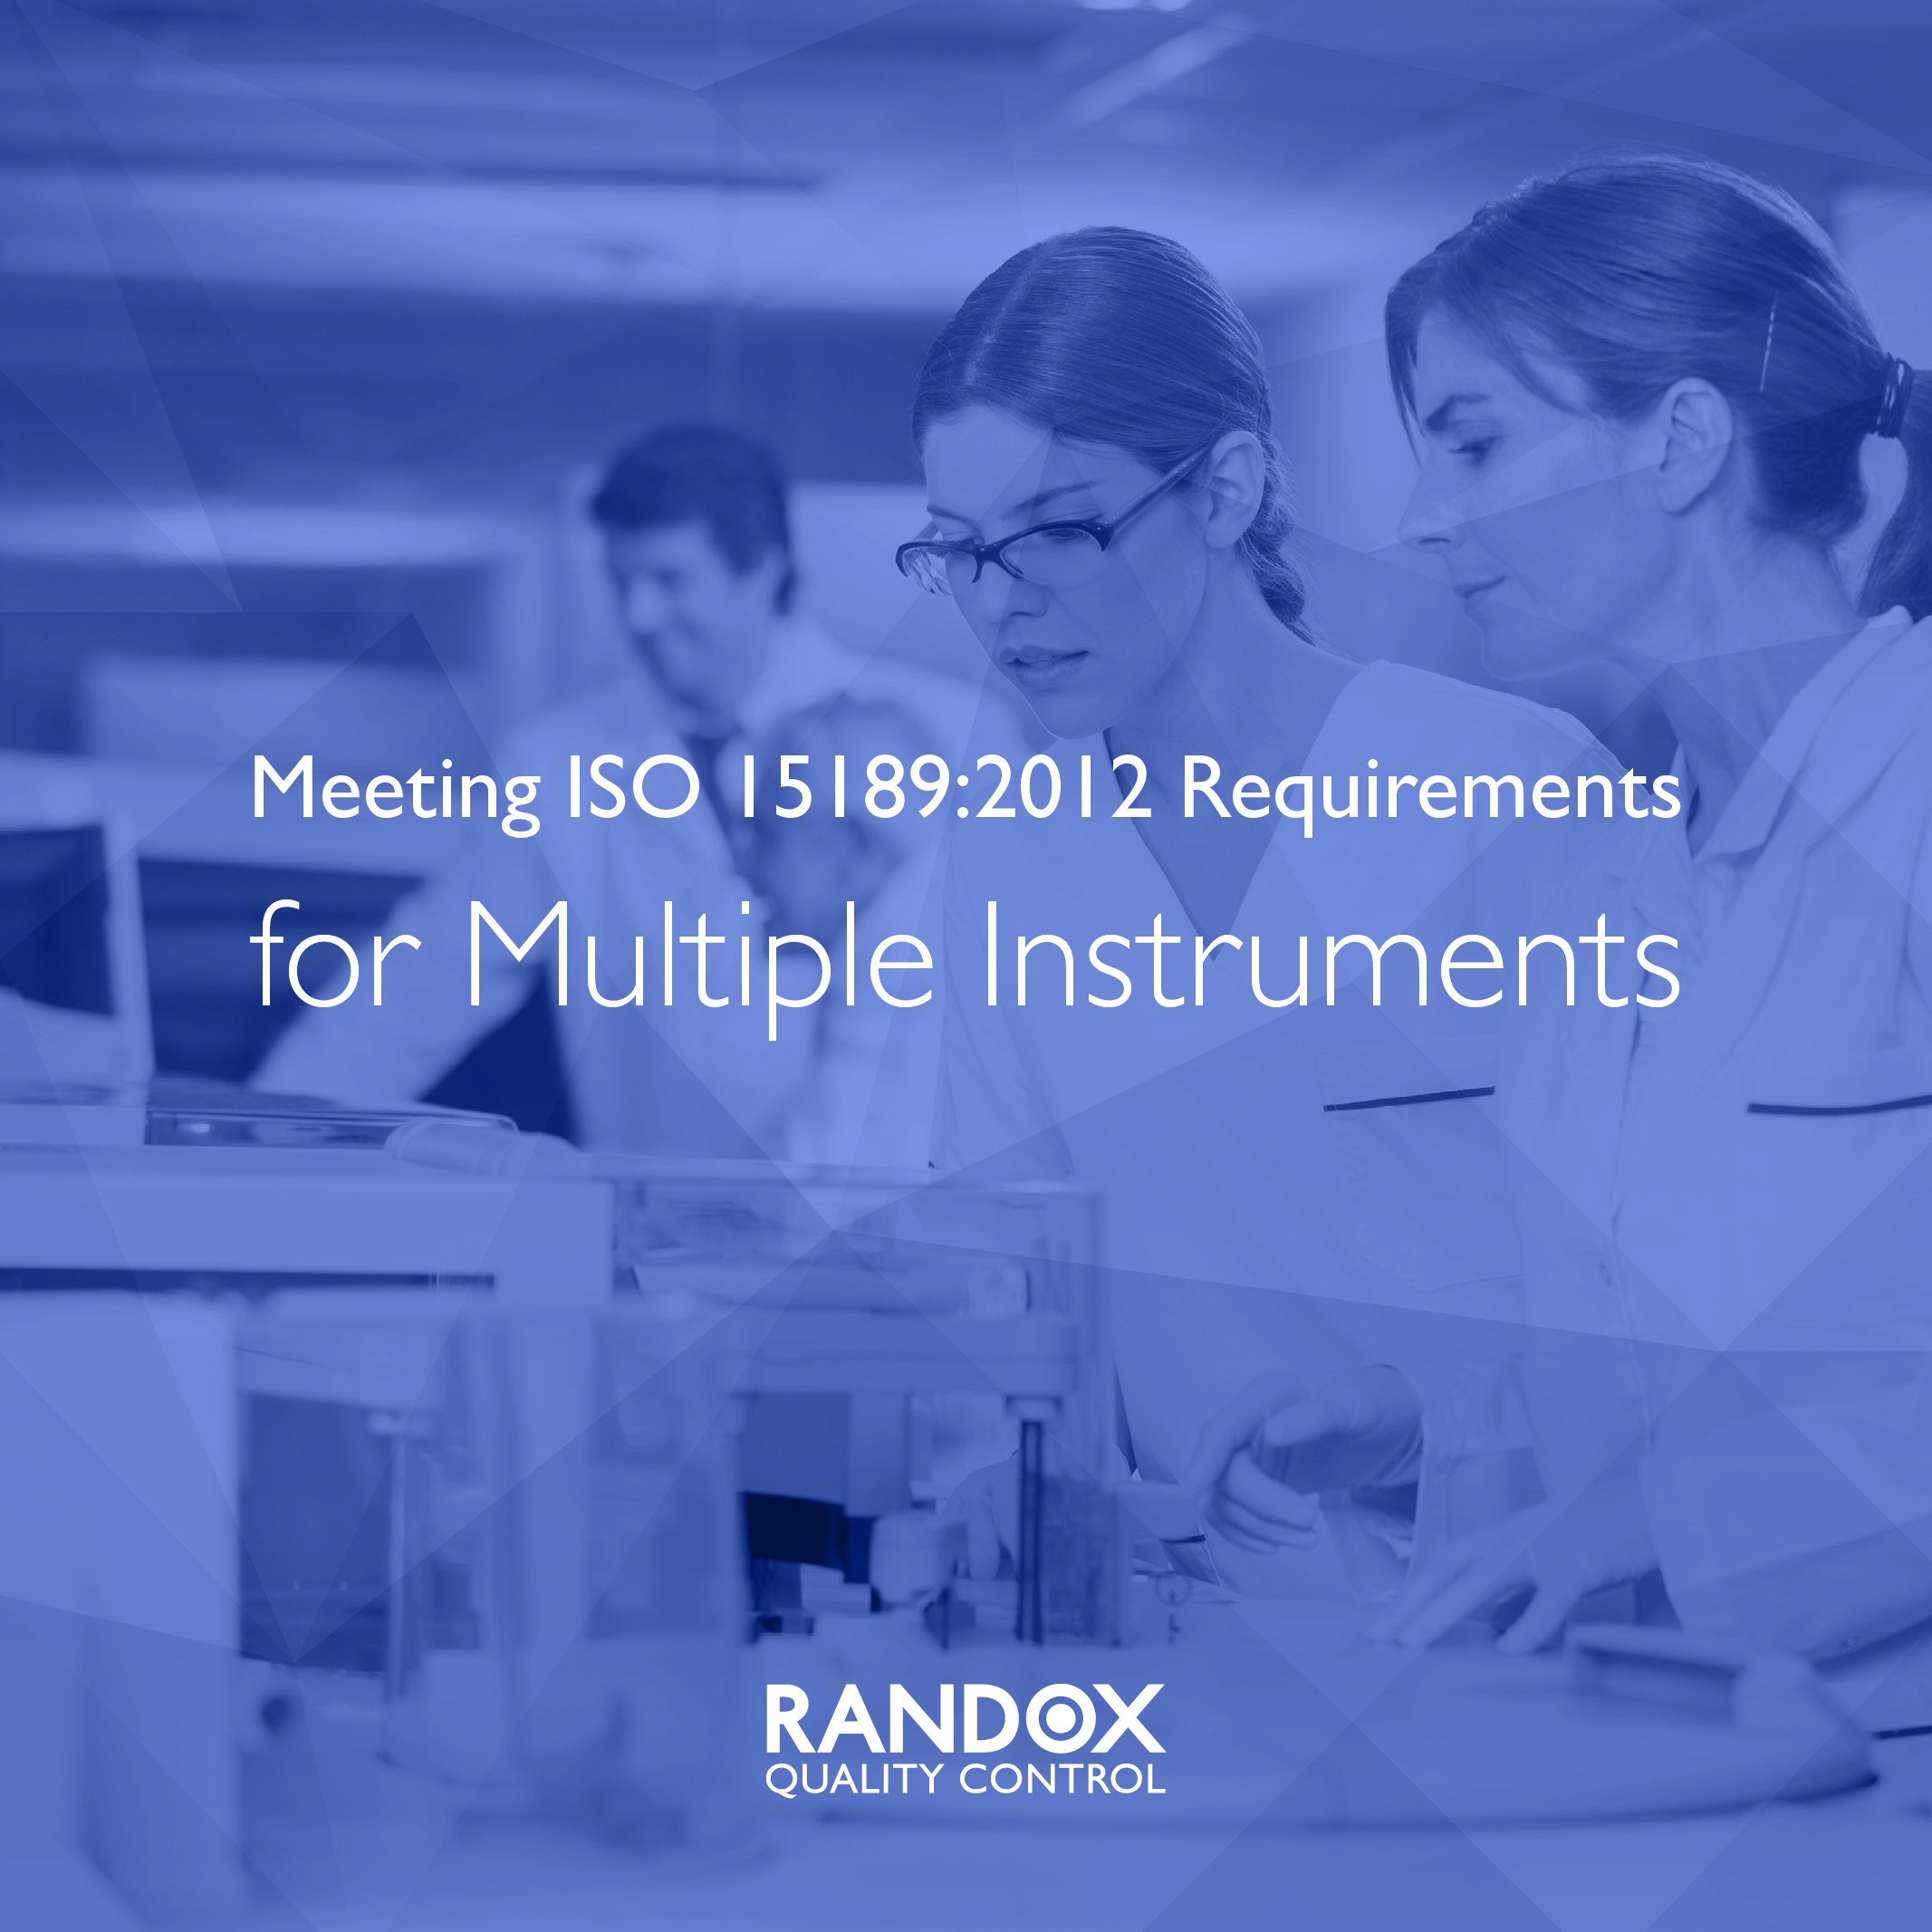 Meet ISO 15189 Requirements for Multiple Instruments